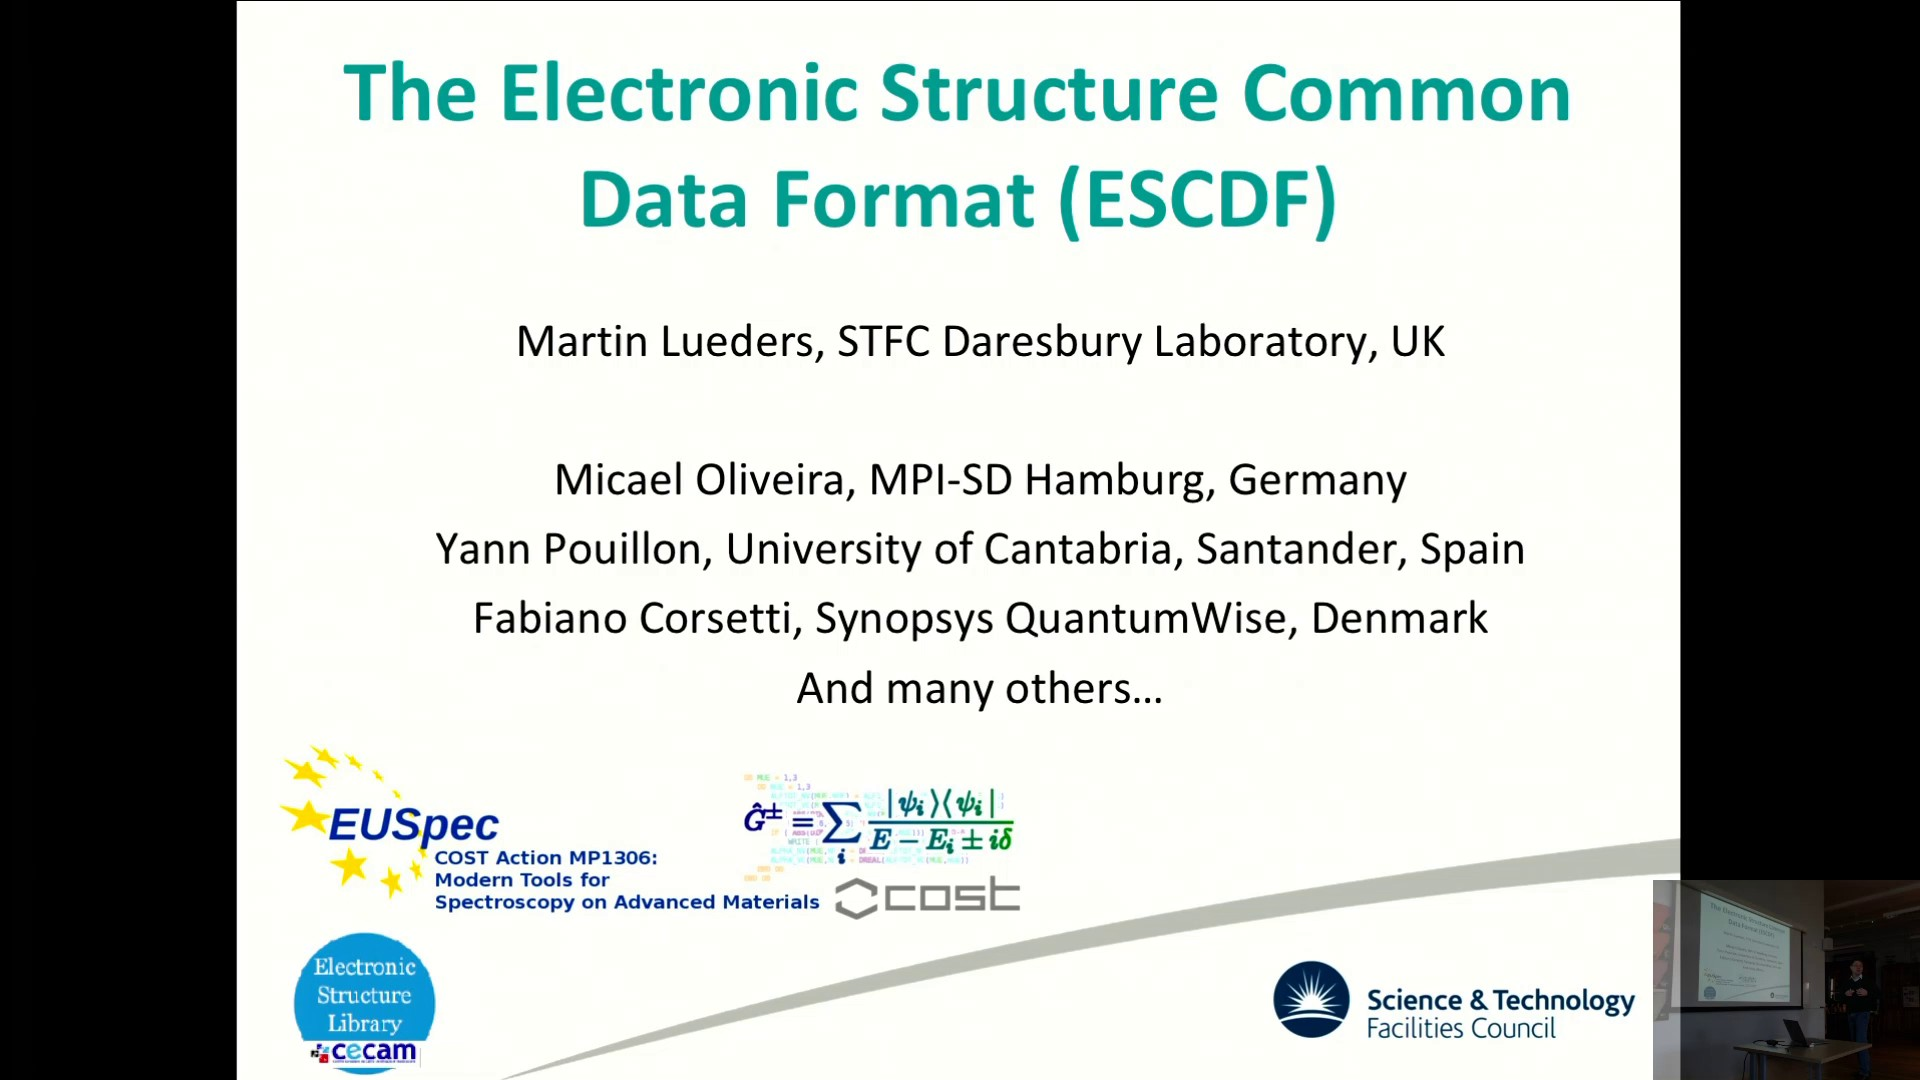 Thumbnail of The Electronic Structure Common Data Format